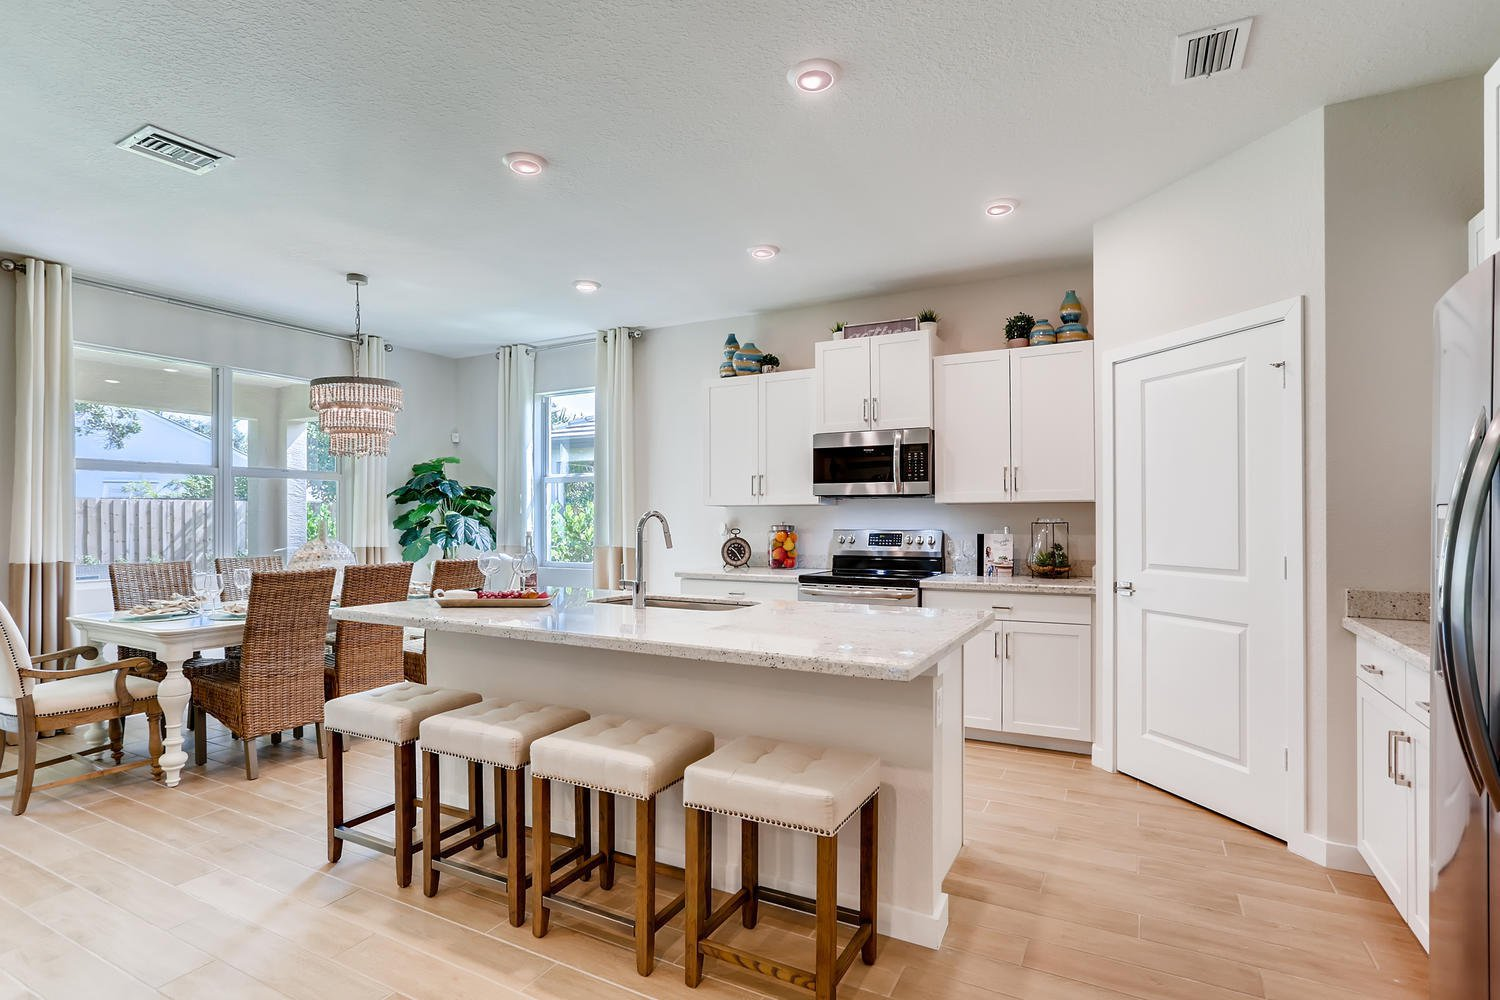 New Homes for Sale Palm City FL